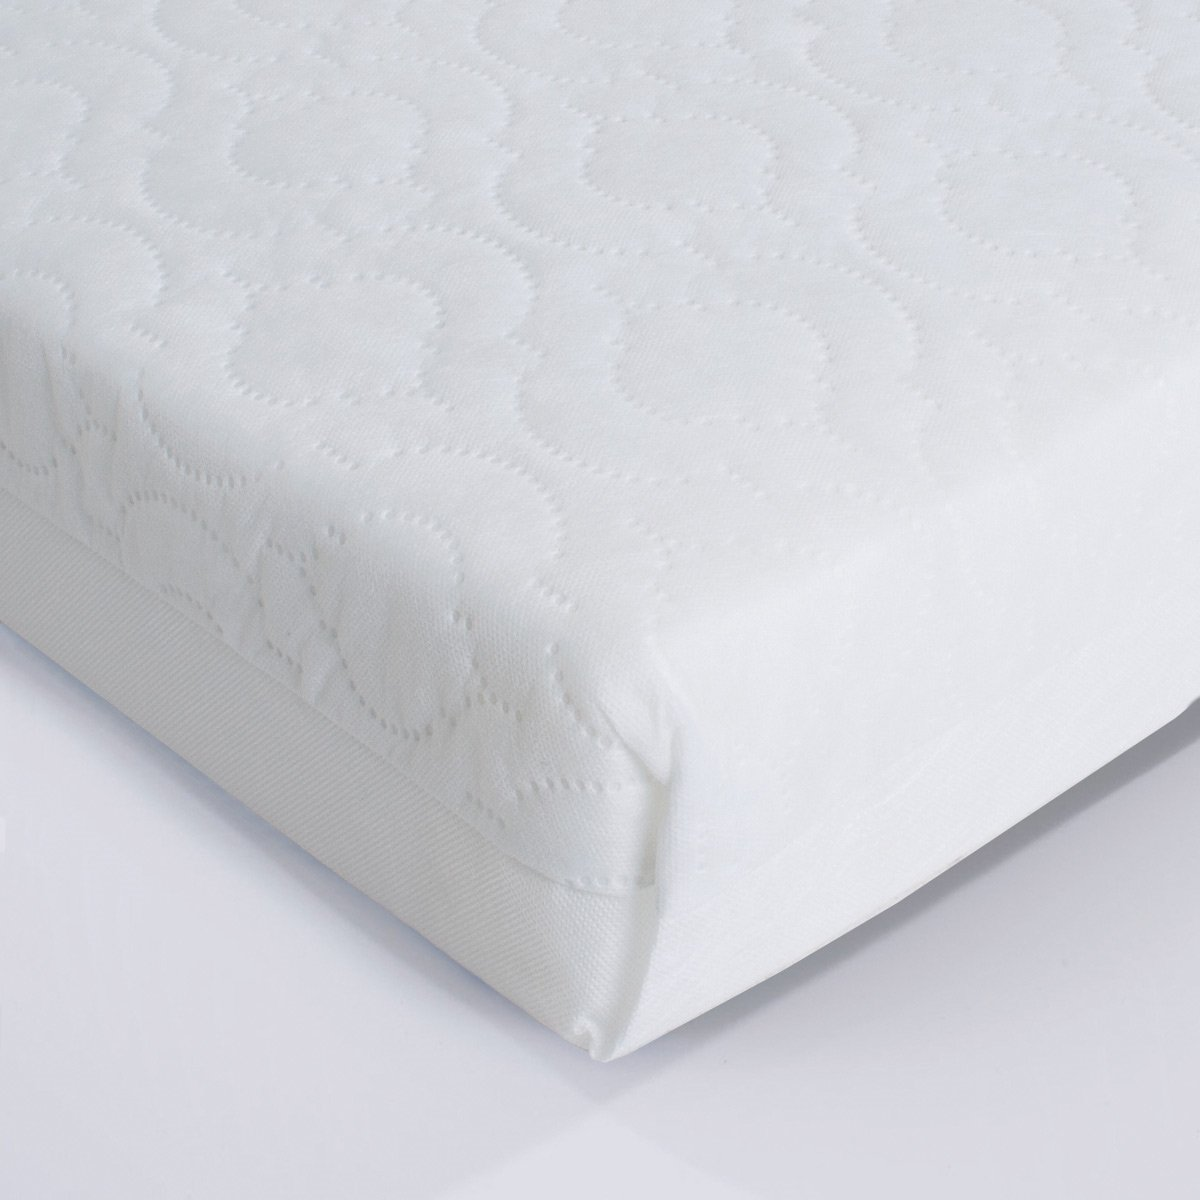 Superior Quilted Cot Mattress 140 x 70 x 10cm Thick - British Made With High Grade Density Foam TOPSTYLE